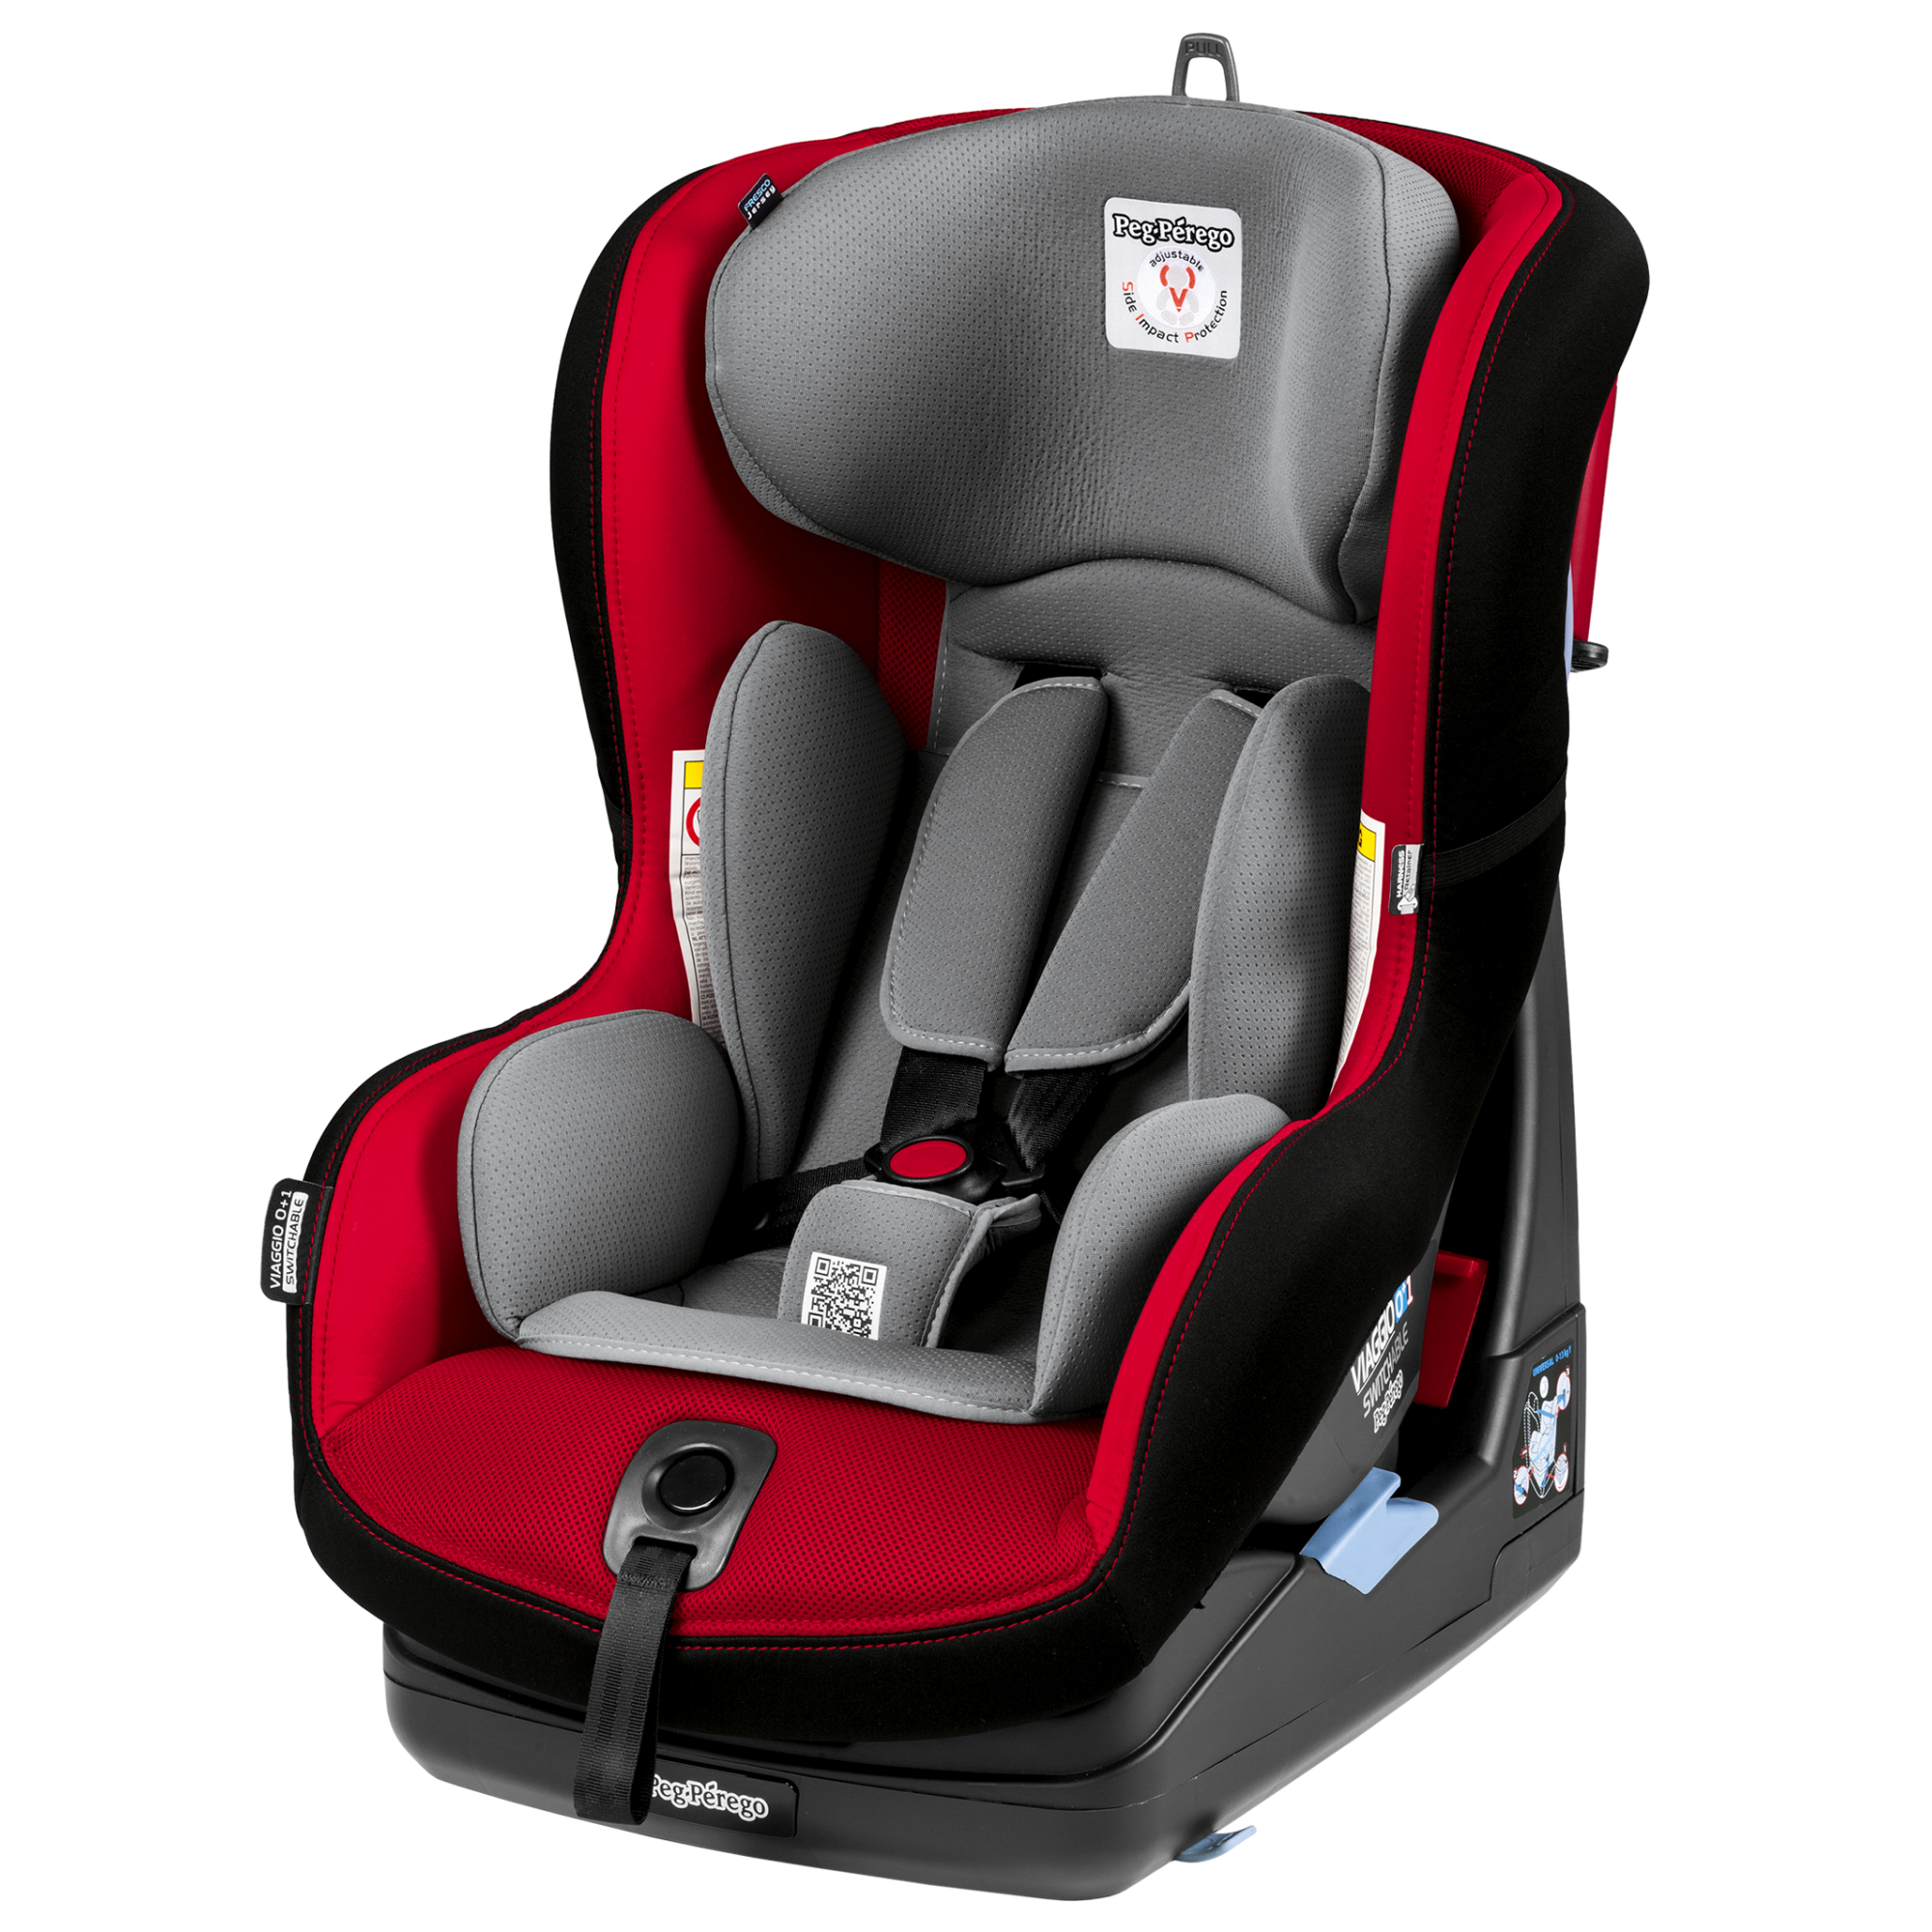 Scaun Auto Viaggio Switchable, Peg Perego, 0+/1, Rouge